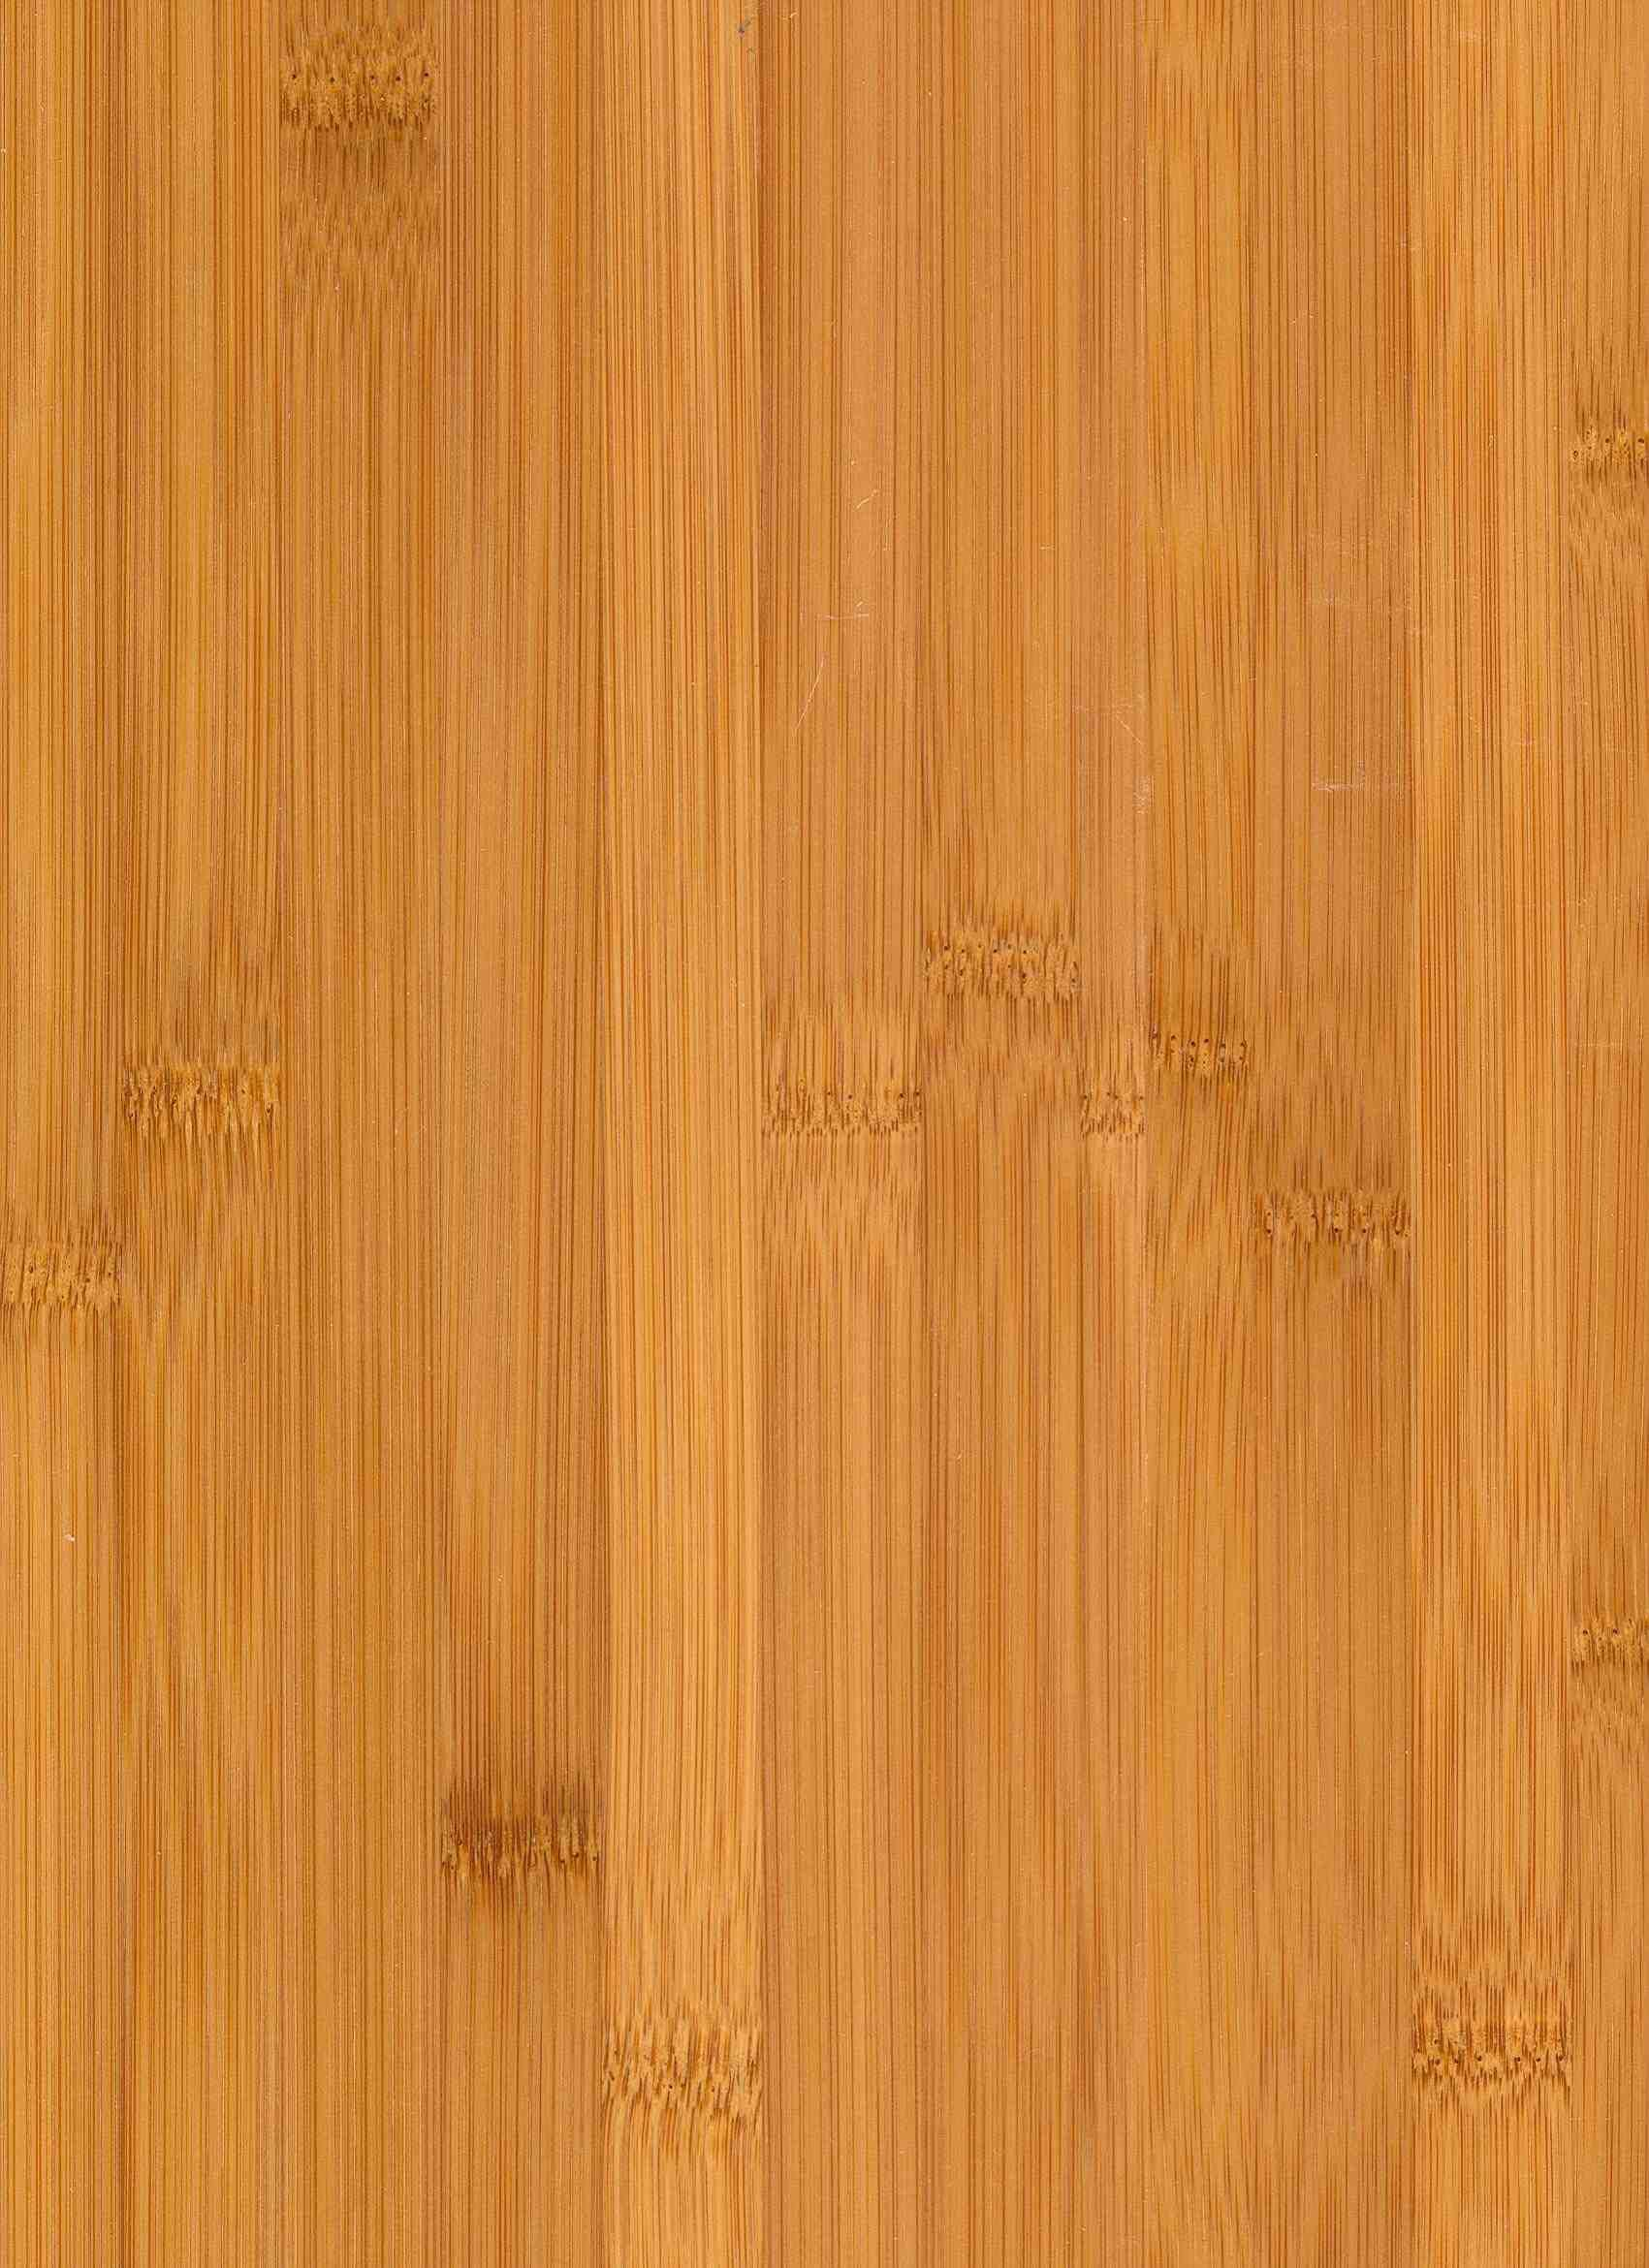 Bamboo flooring throughout the house will be so nice home